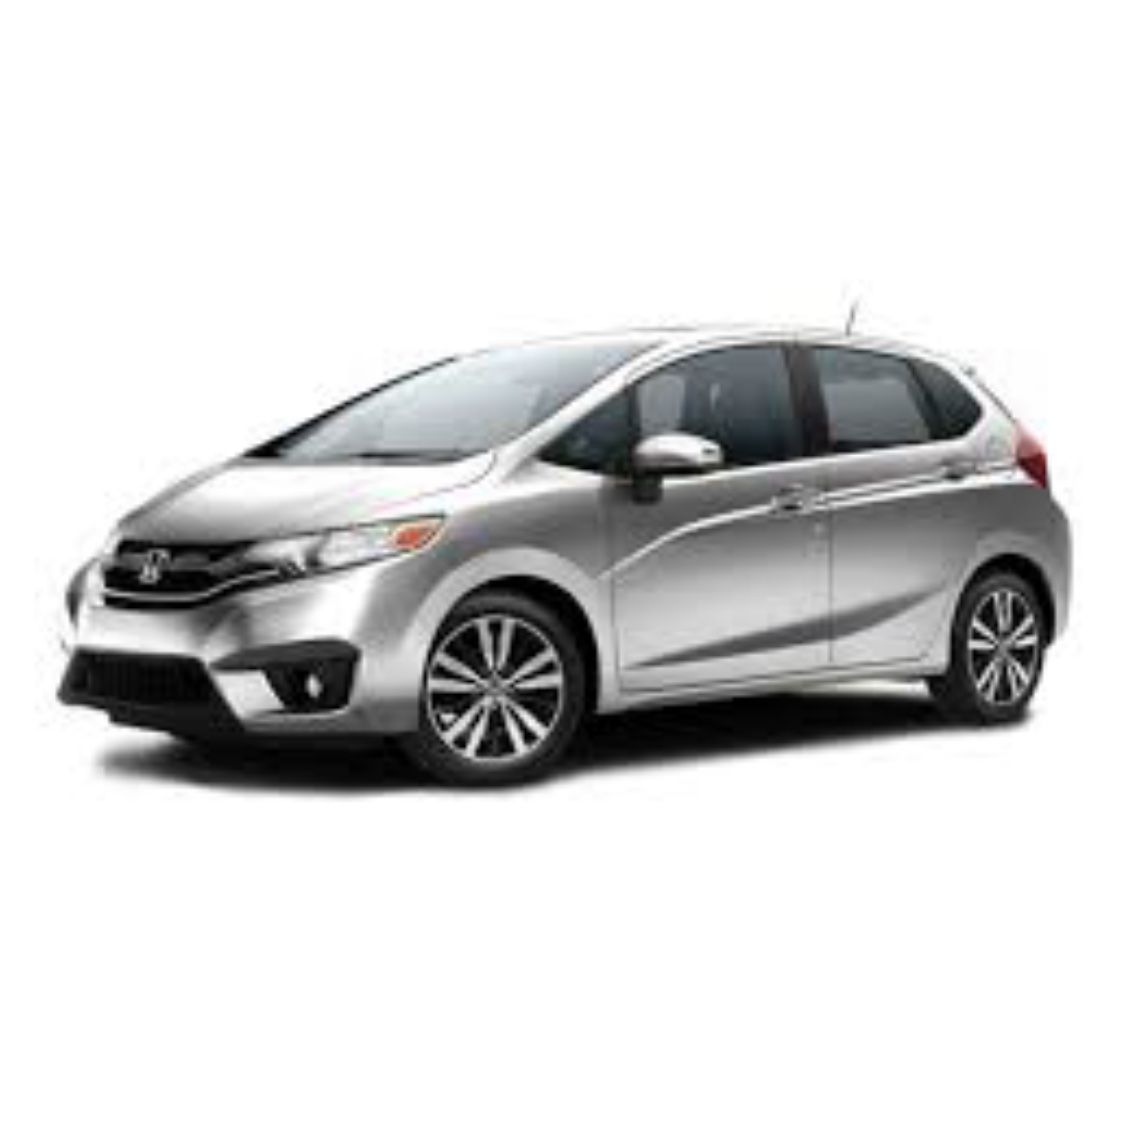 2016 Honda Fit To Kevan Bennett 2020